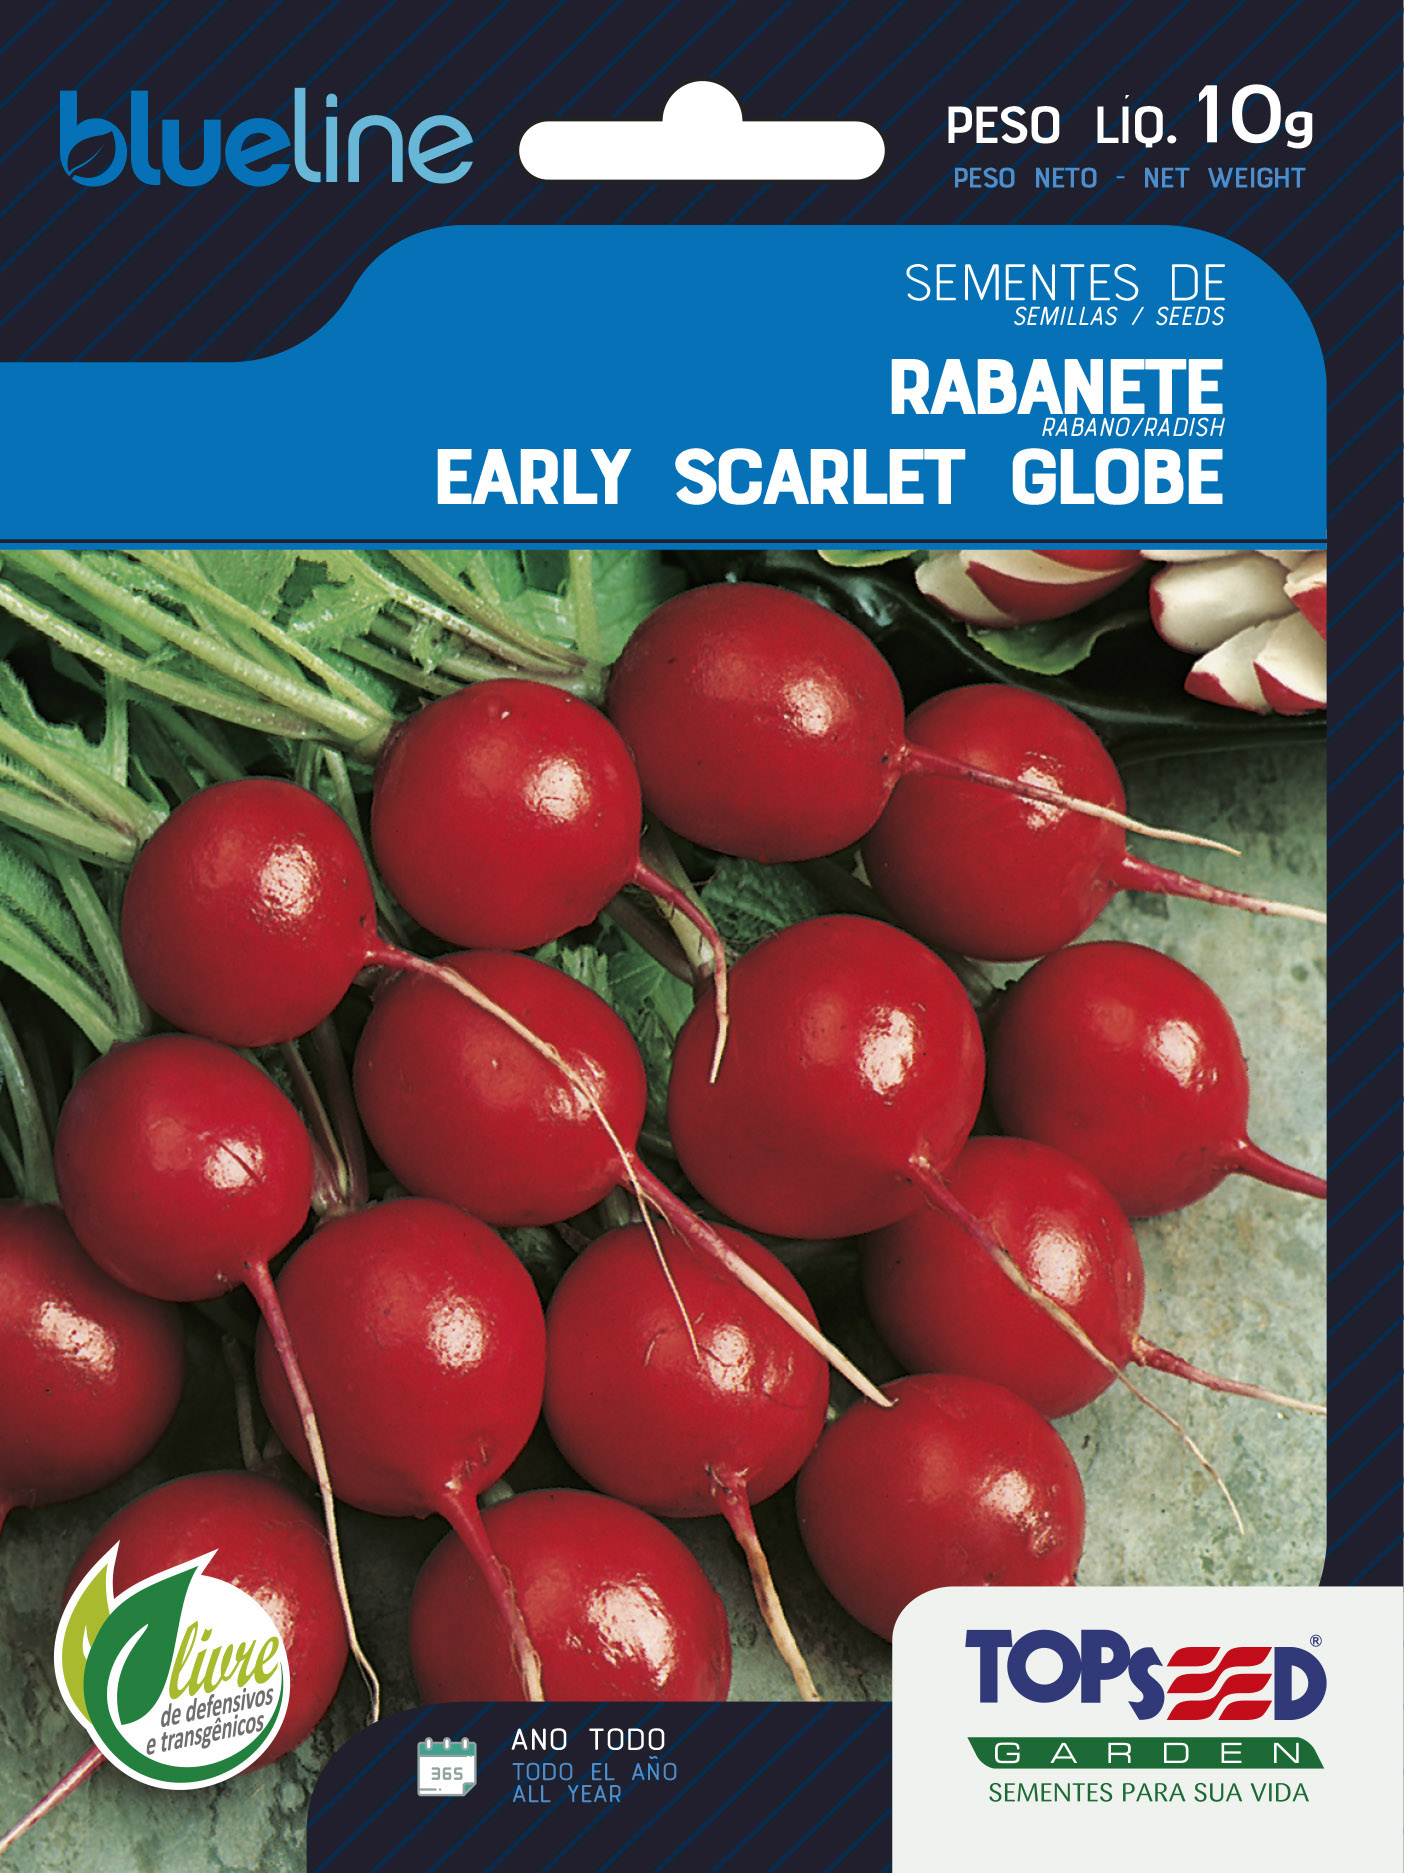 RABANETE EARLY SCARLET GLOBE